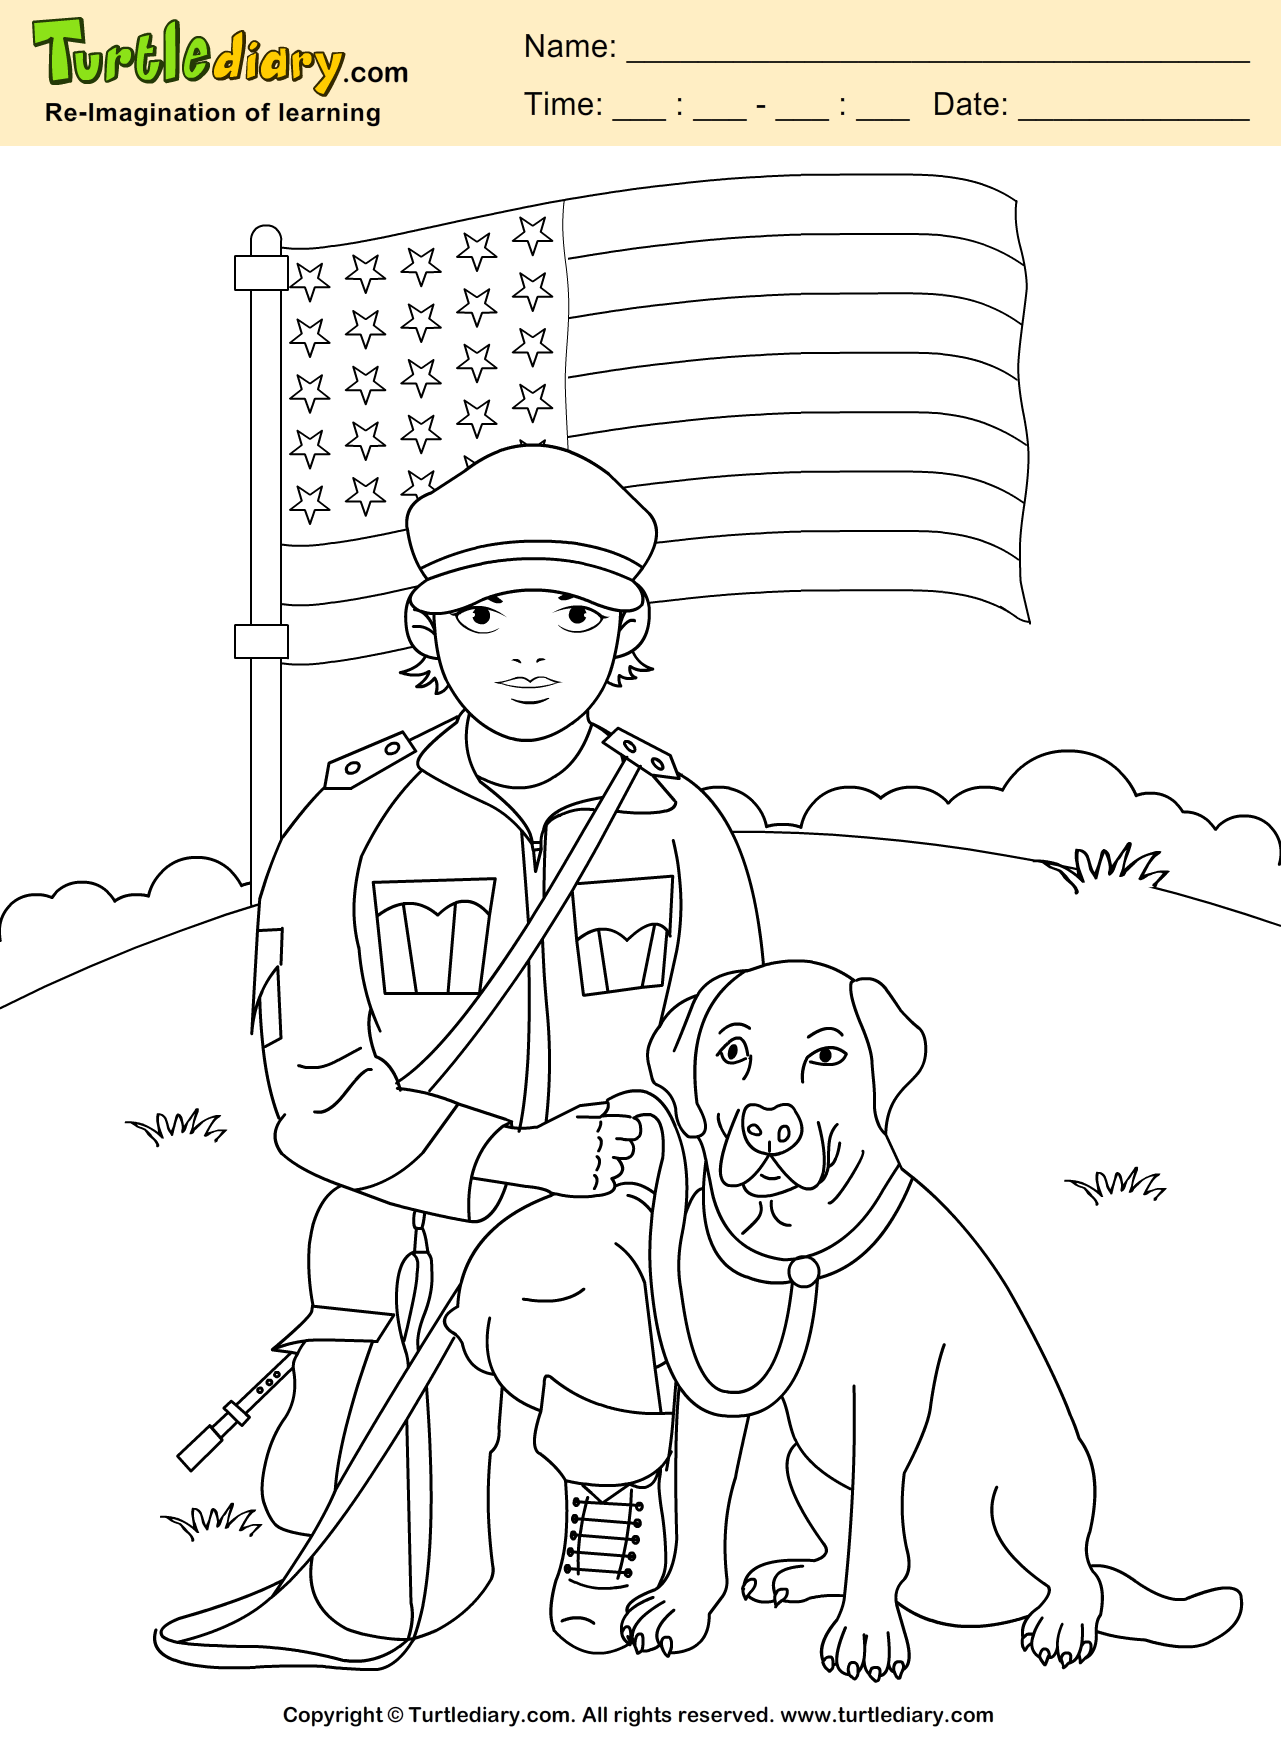 Soldier With Dog Coloring Sheet Veterans Day Coloring Page Jungle Coloring Pages Dog Coloring Page [ 1754 x 1281 Pixel ]